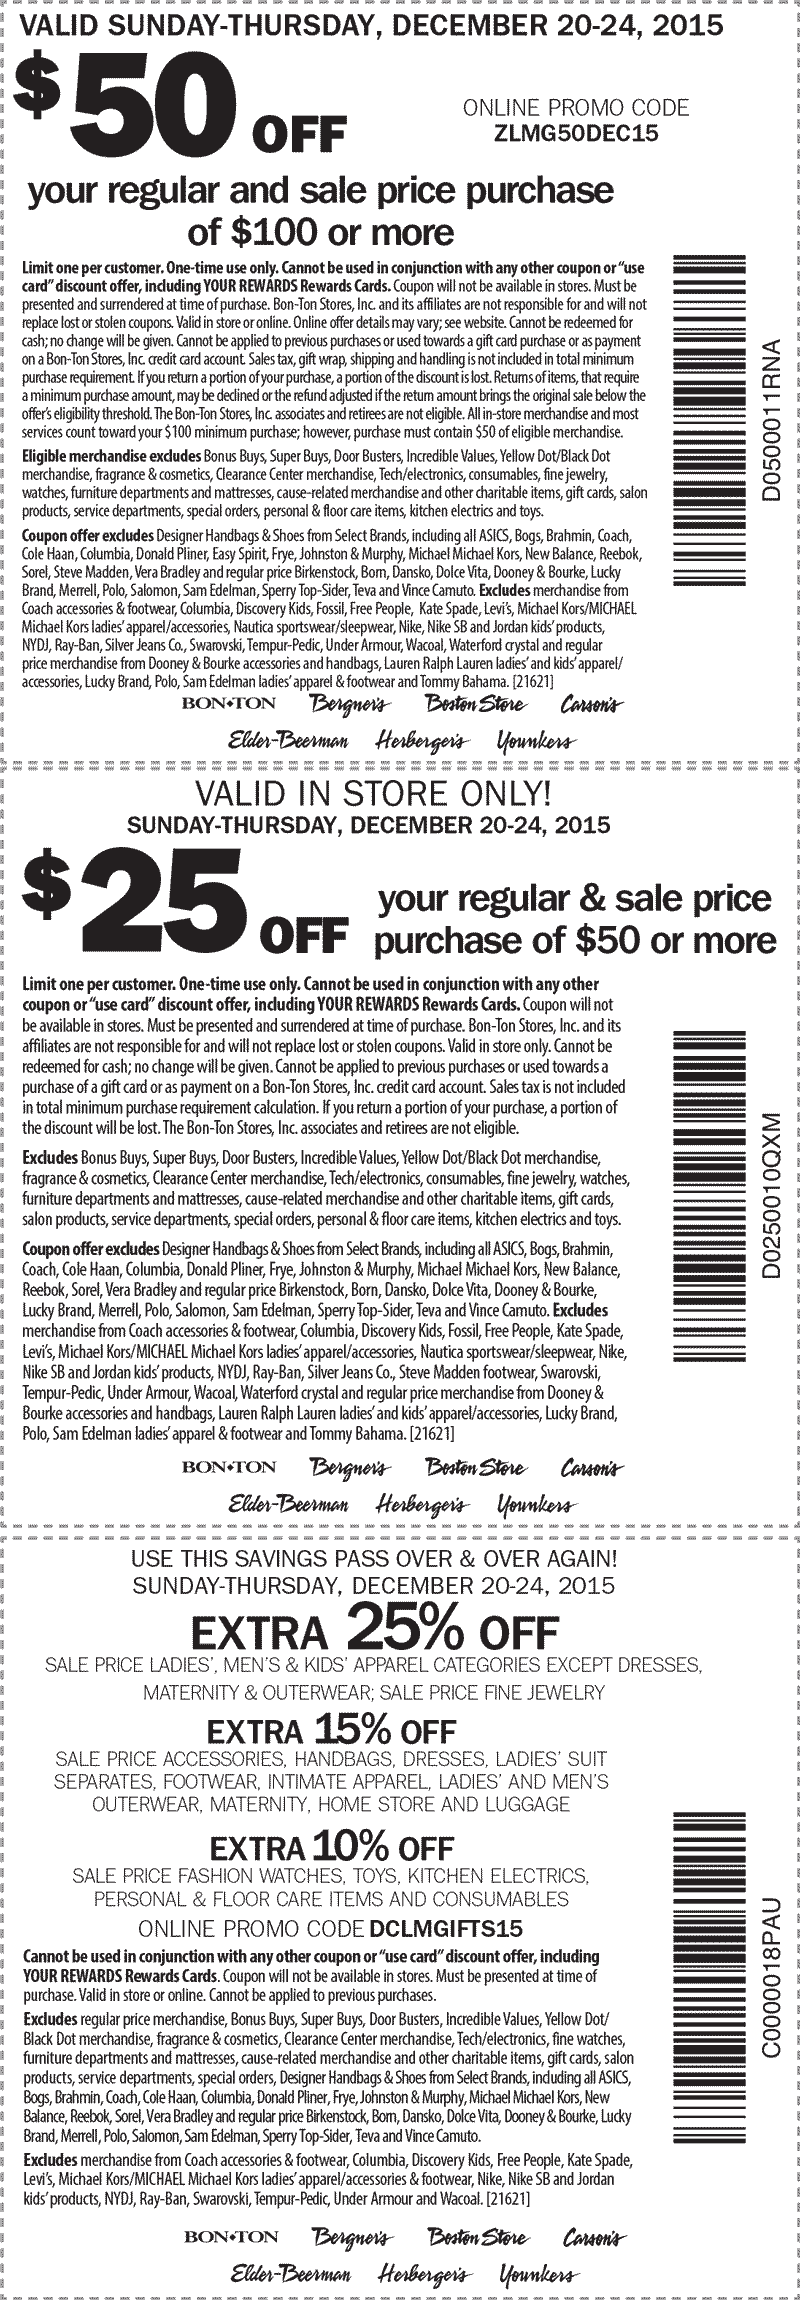 Carsons Coupon March 2019 $50 off $100 & more at Carsons, Bon Ton & sister stores, or online via promo code ZLMG50DEC15